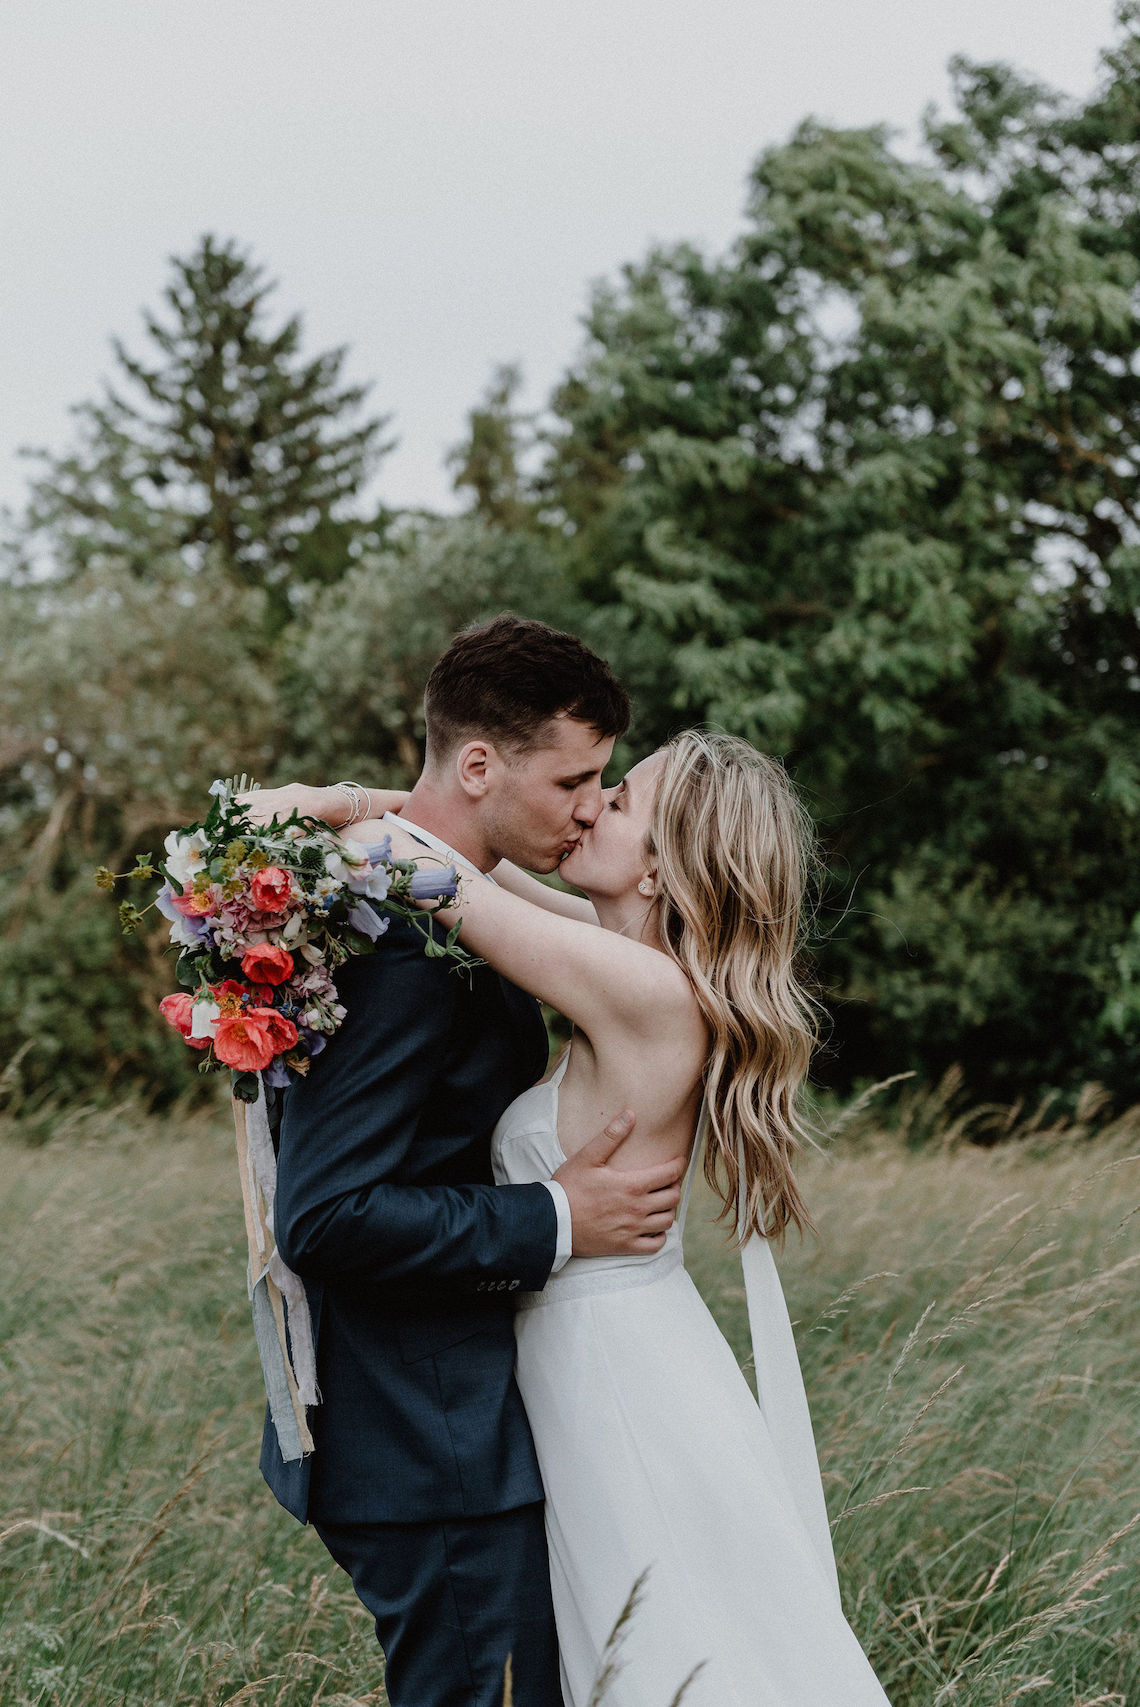 Pretty Meadow Wedding in the Czech Republic – Carols Darkroom 38